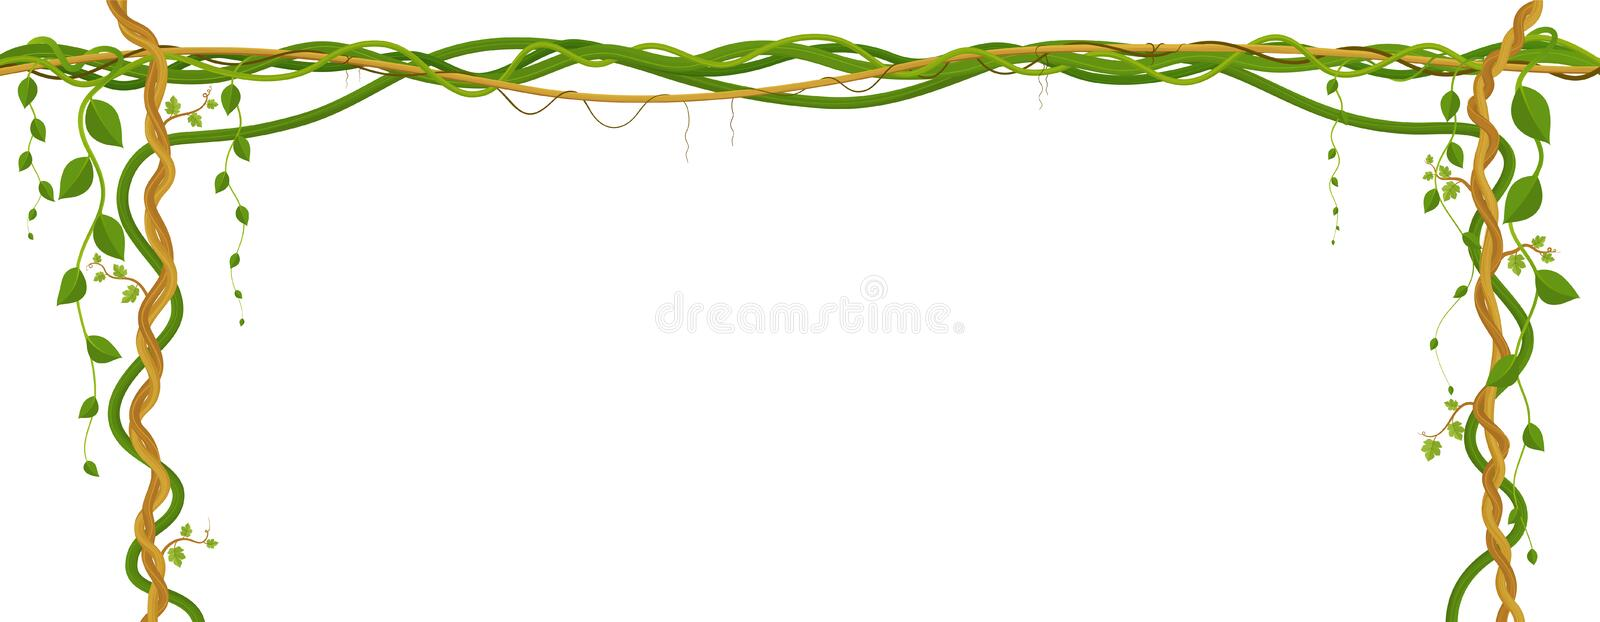 Hanging vine branches. Tropical jungle and plants on white background. royalty free illustration